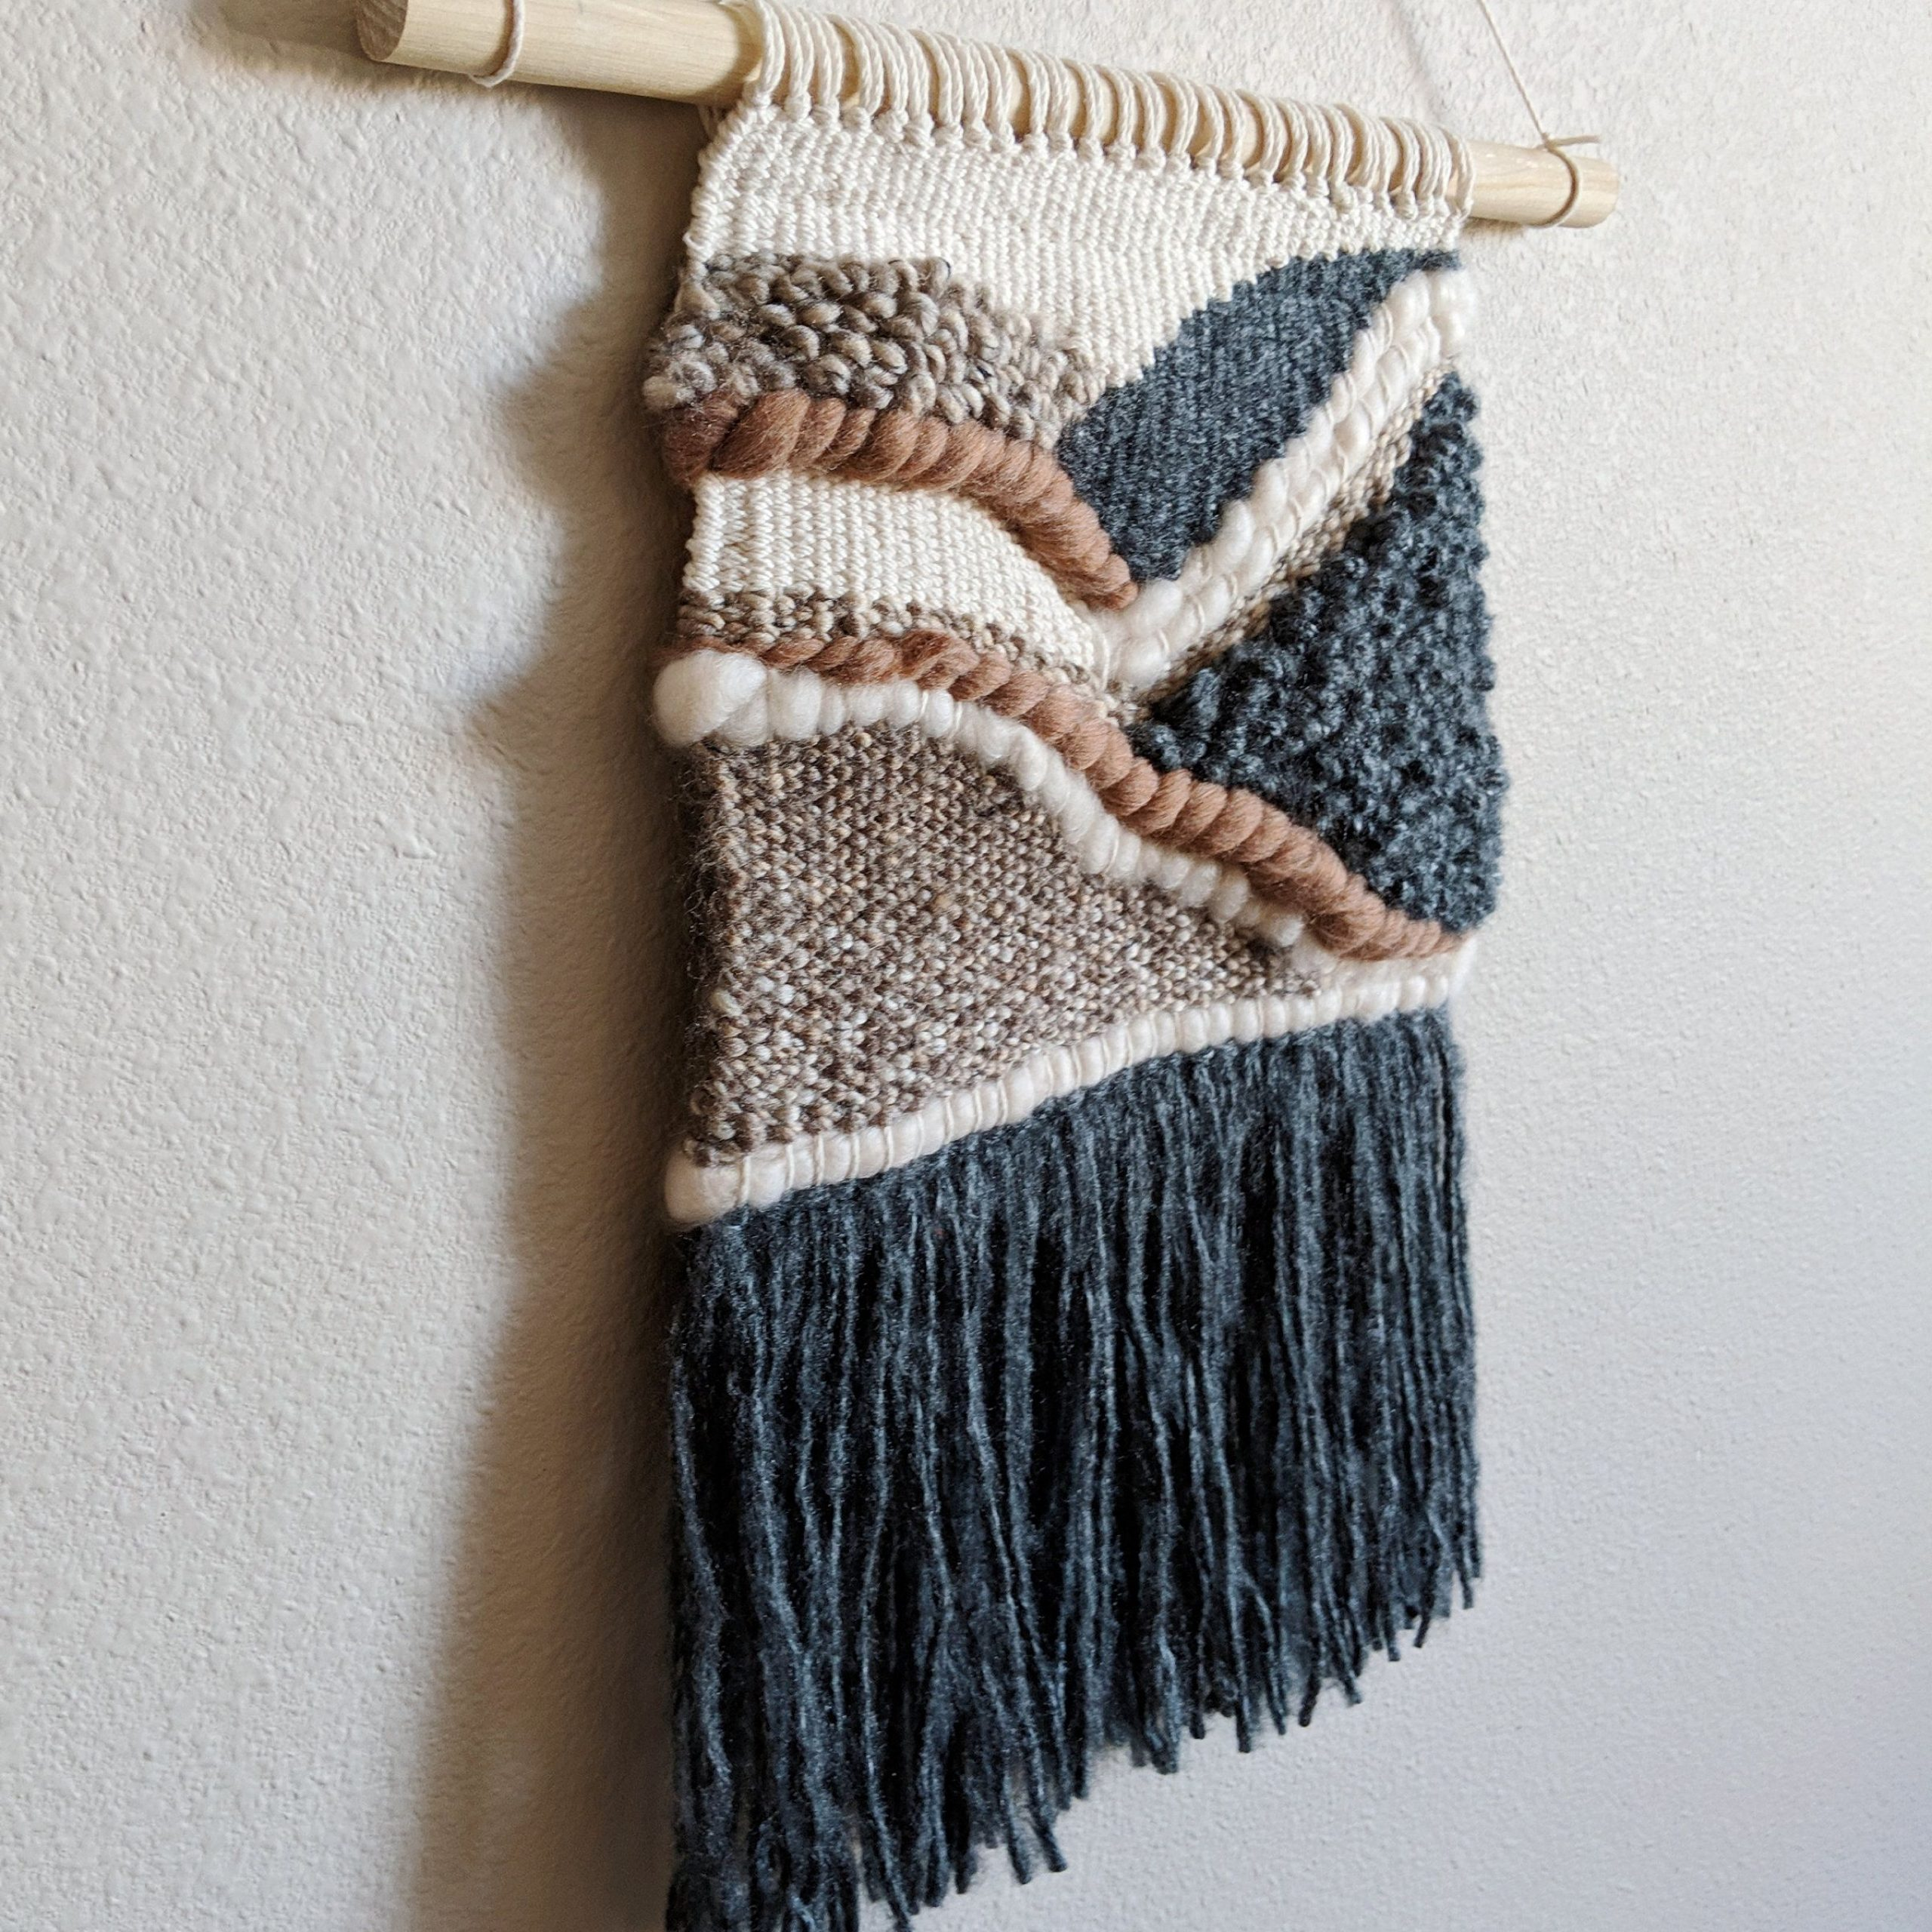 Medium Neutral Woven Wall Hanging, Home Decor, Tapestry Intended For Most Popular Hand Woven Wall Hangings (View 6 of 20)